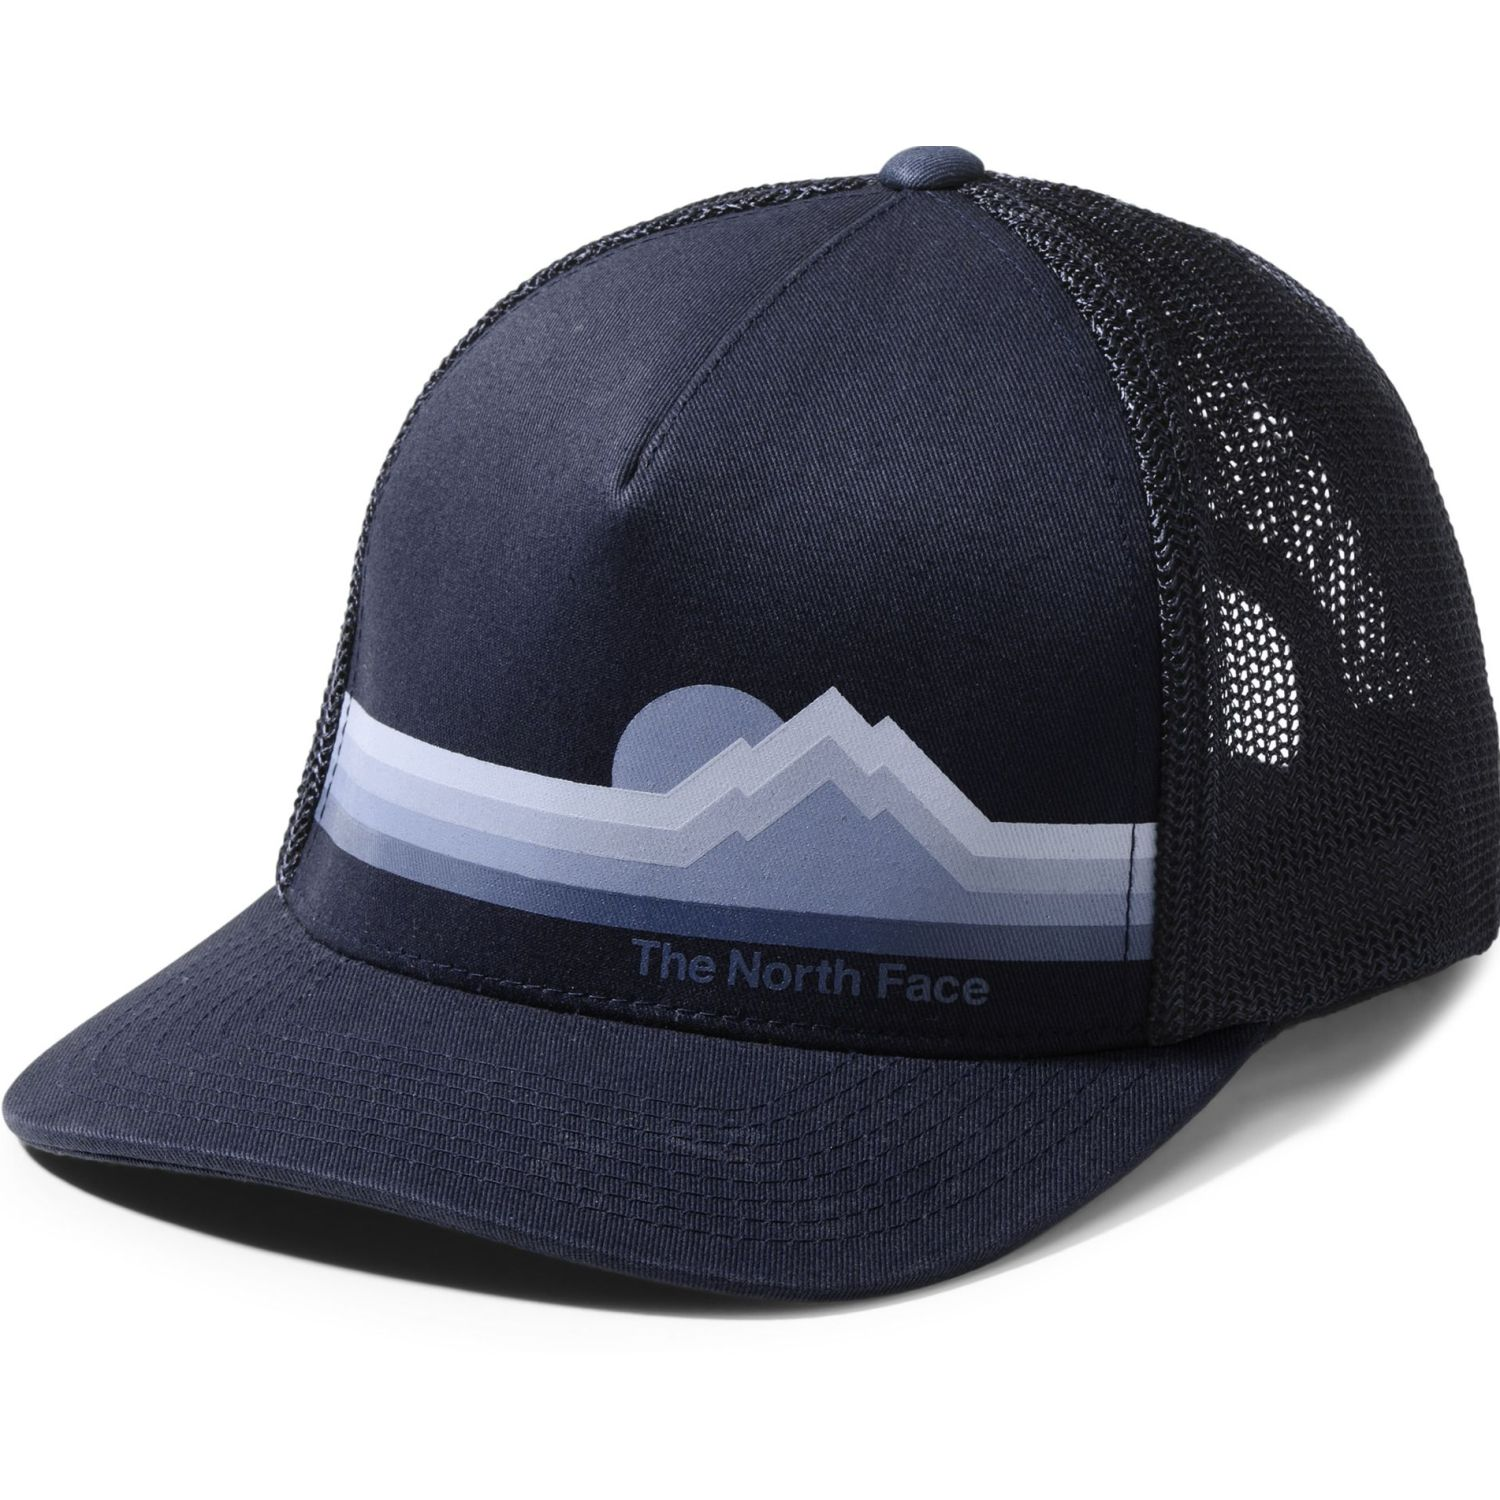 Gorros de Hombre The North Face Azul keep it structured trucker